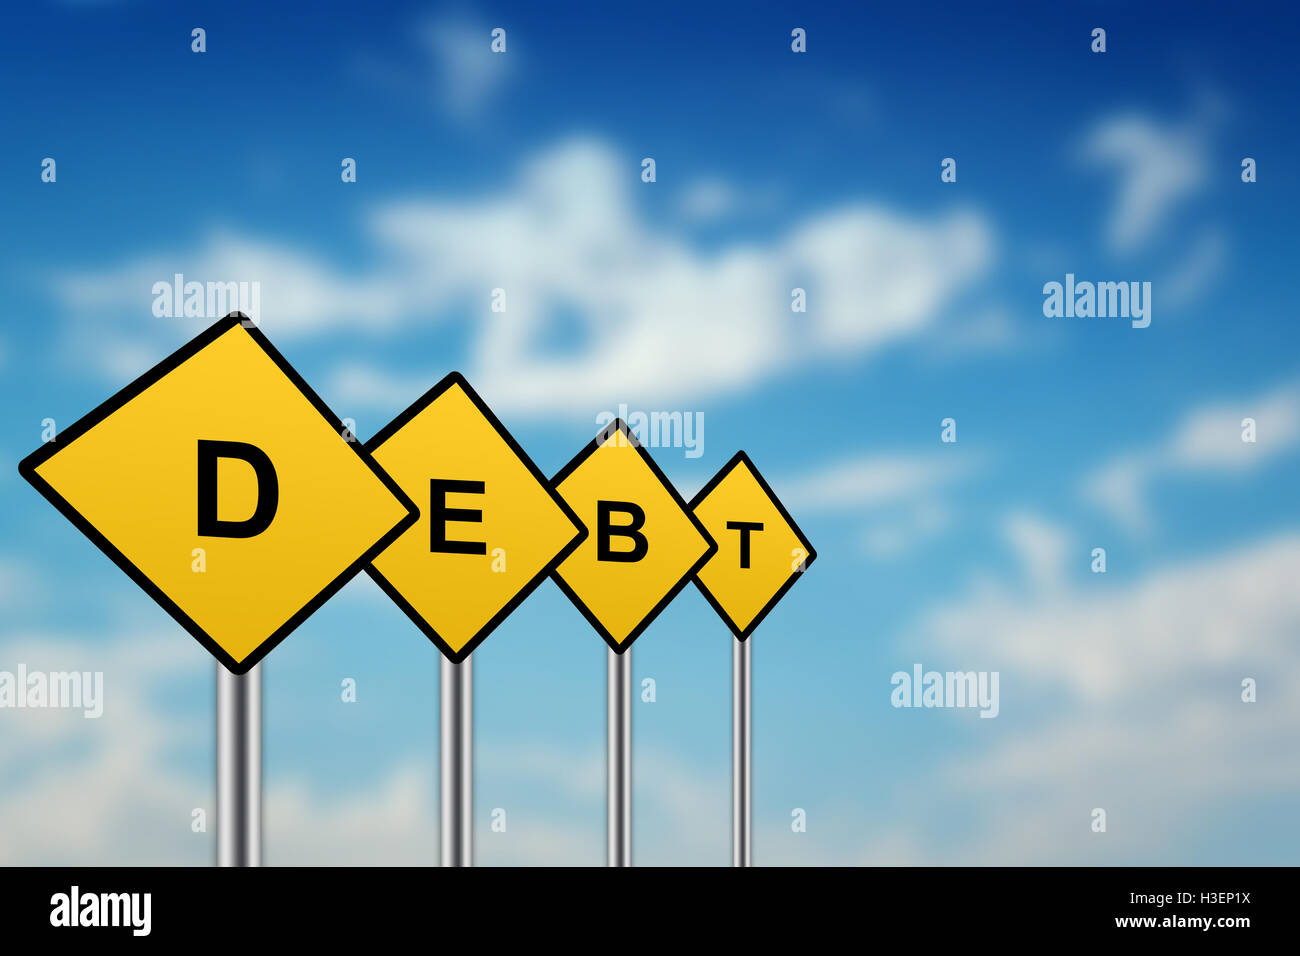 debt on yellow road sign with blurred sky background - Stock Image